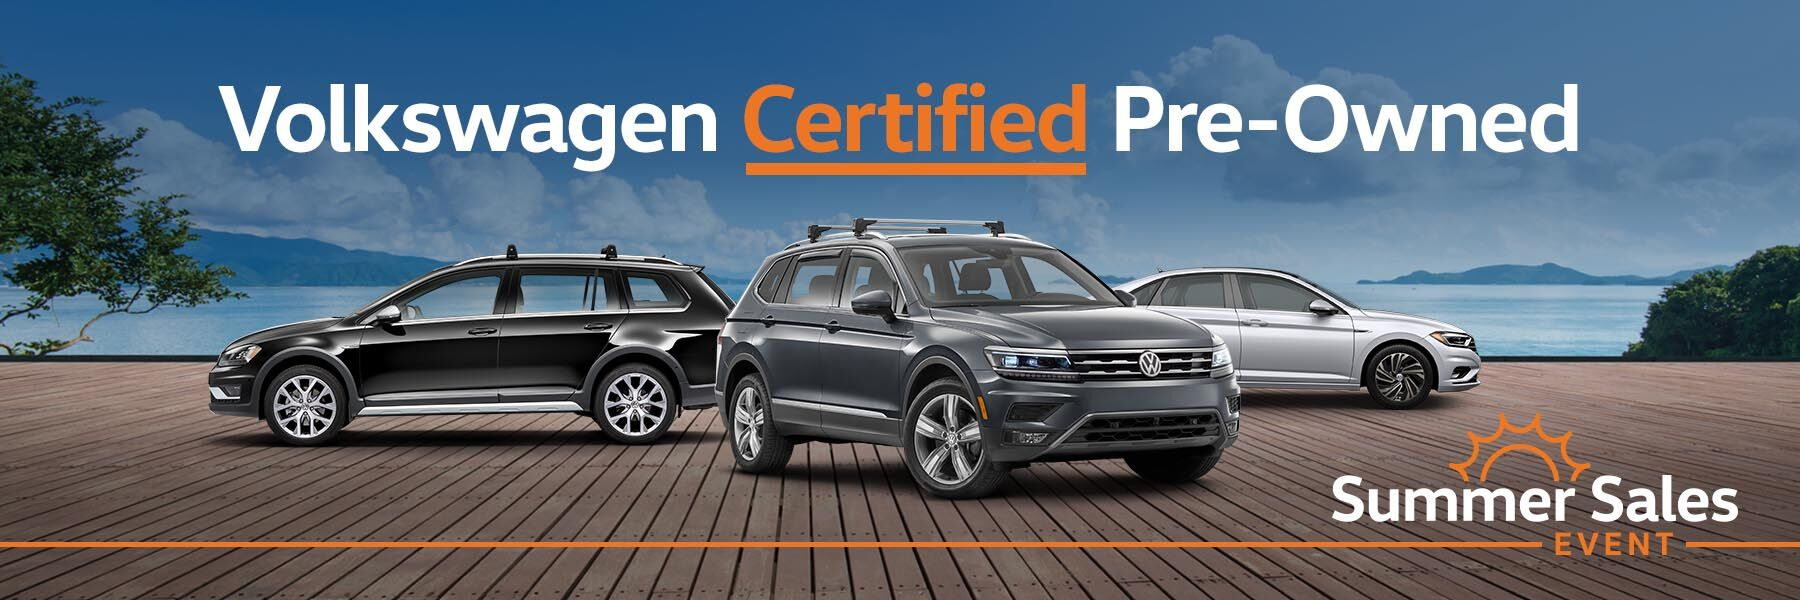 Volkswagen Certified Pre-Owned in Yakima, WA